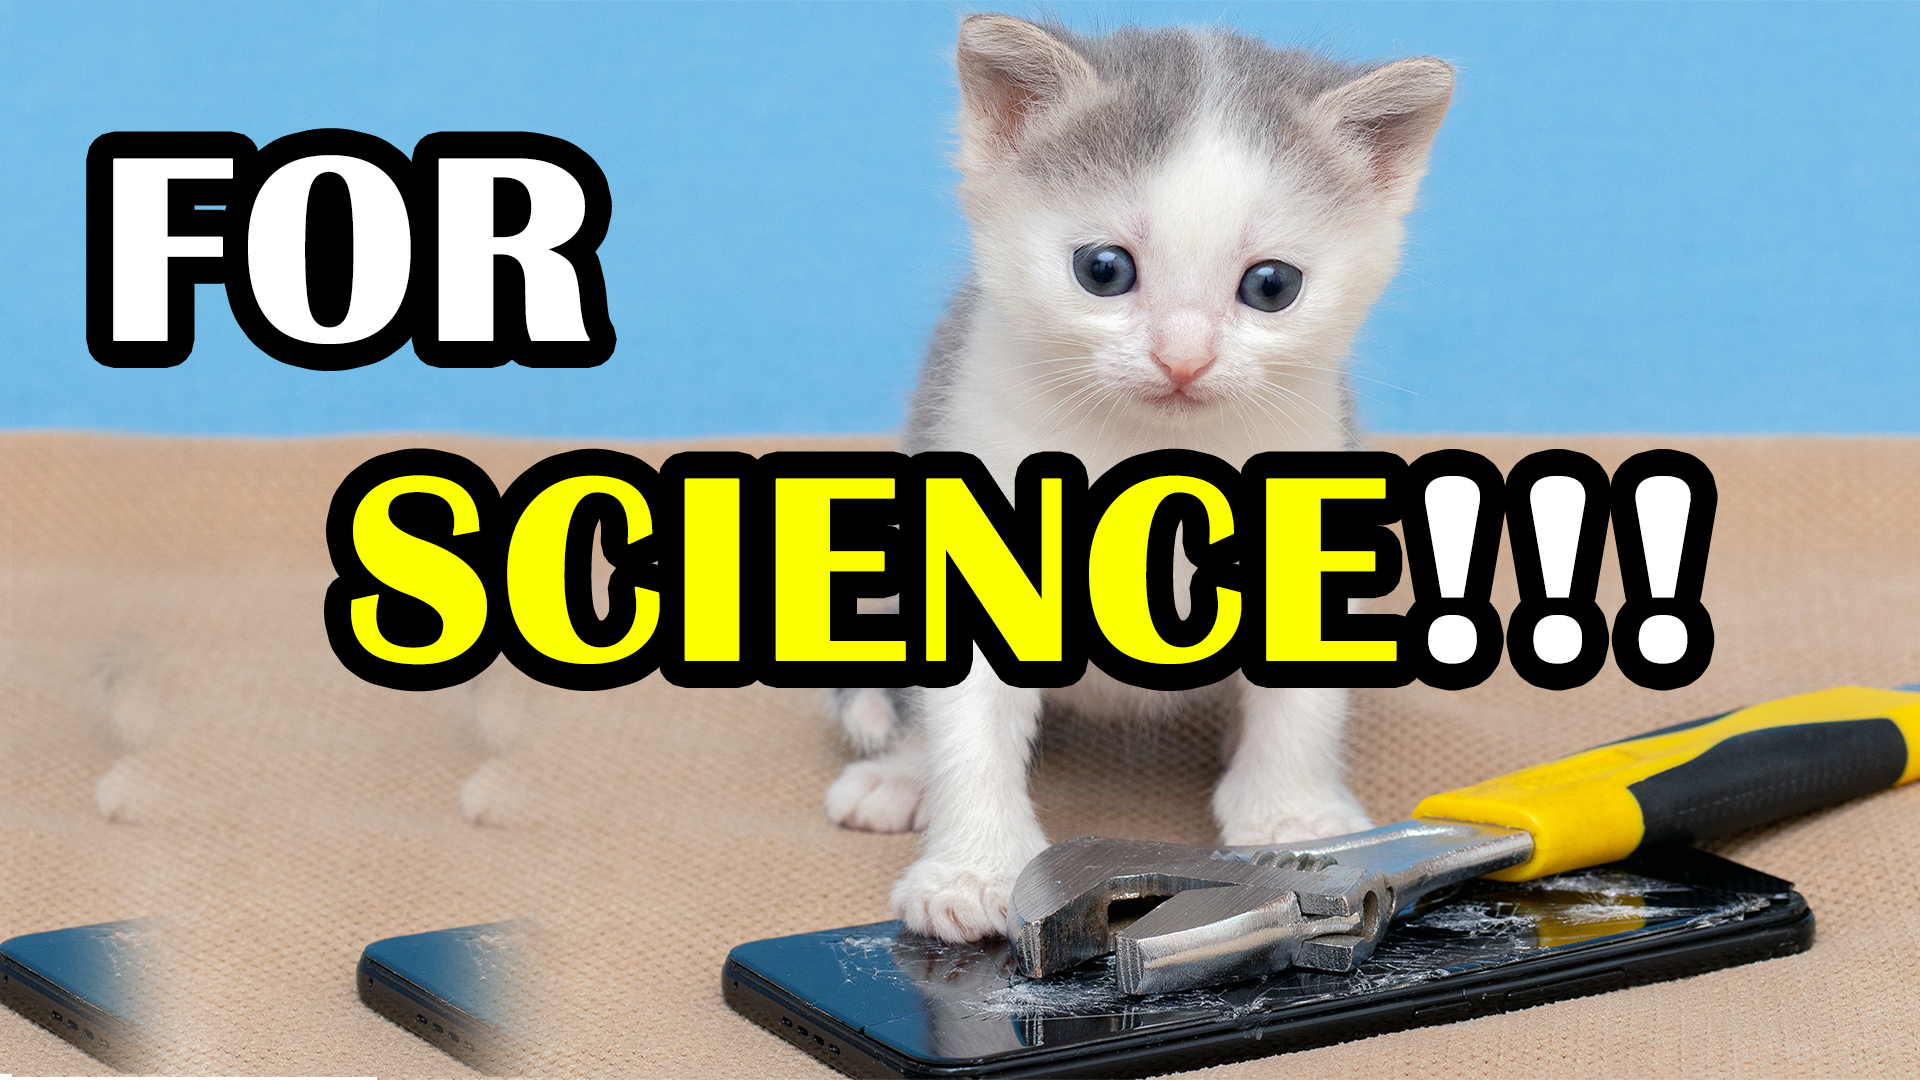 The Curious Case of the Cat that was Turned Into a Living Telephone FOR SCIENCE!!!